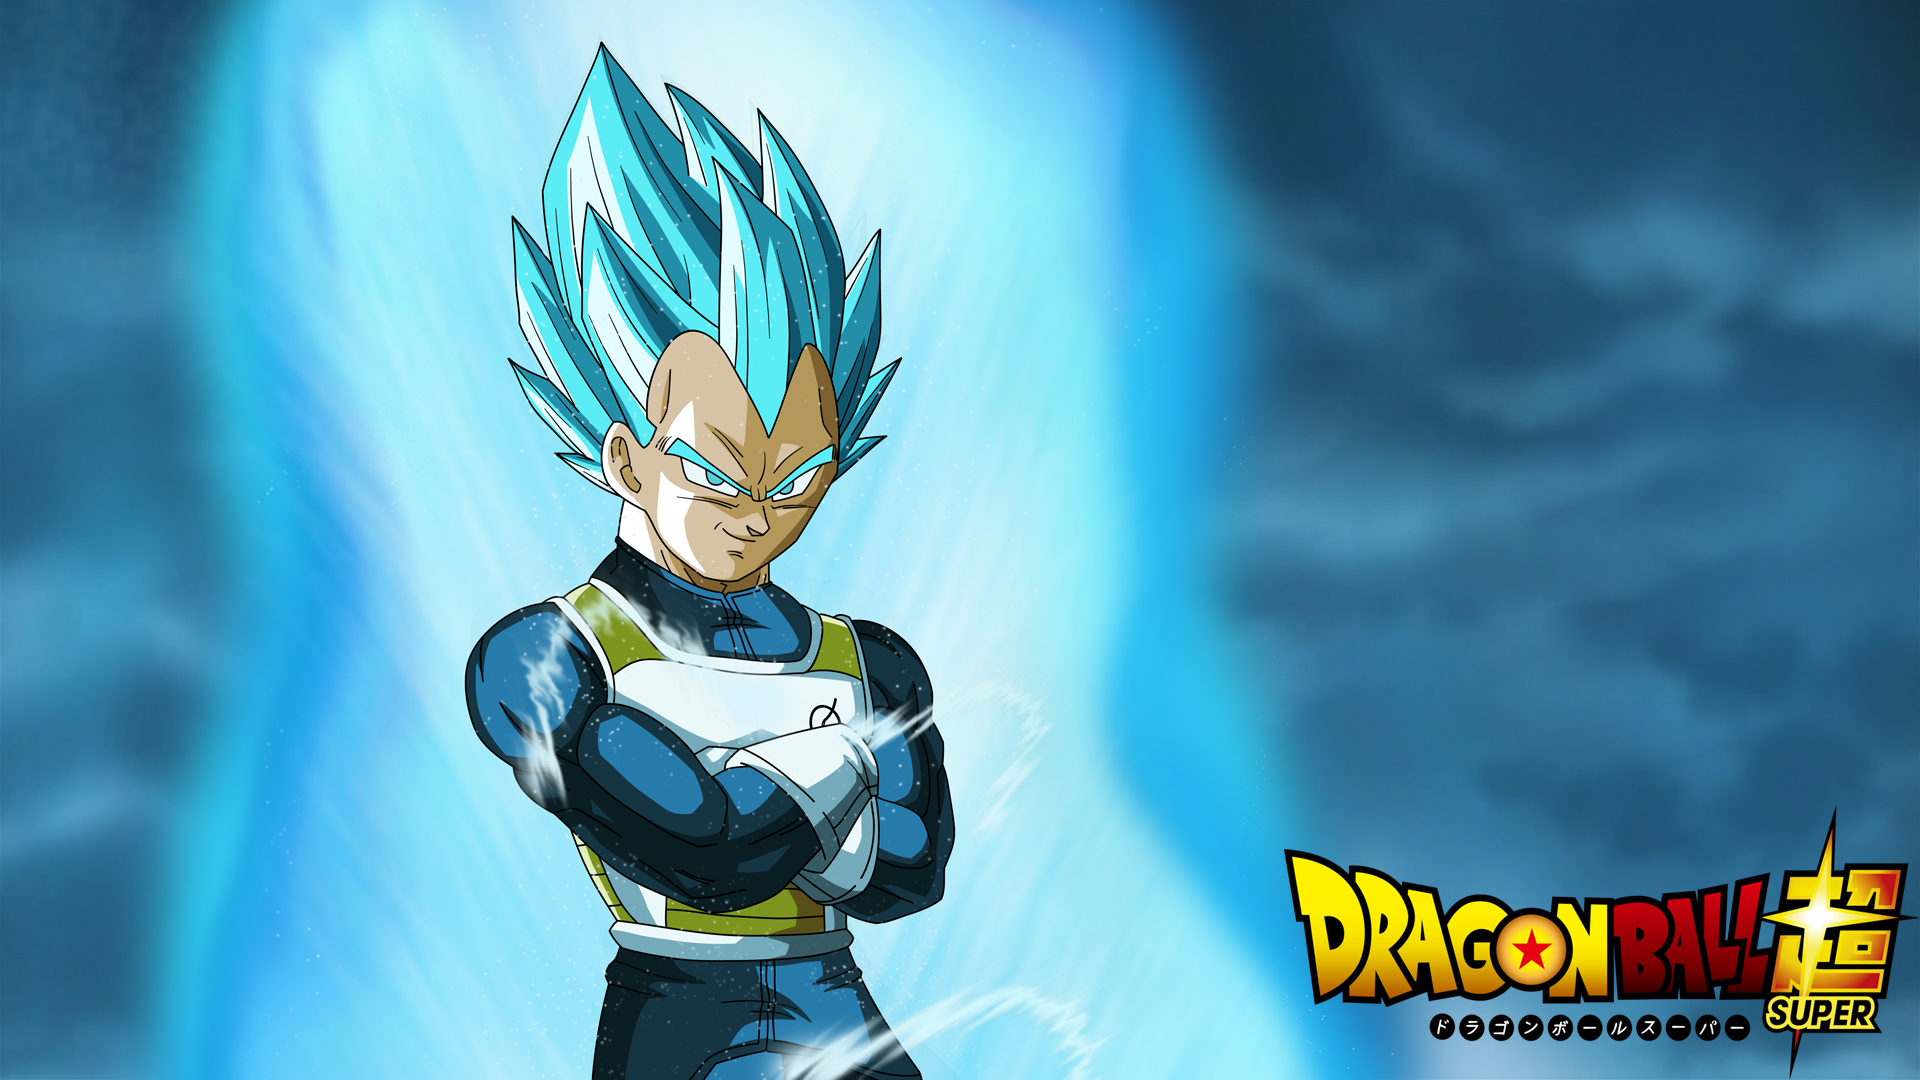 321 vegeta (dragon ball) hd wallpapers | background images